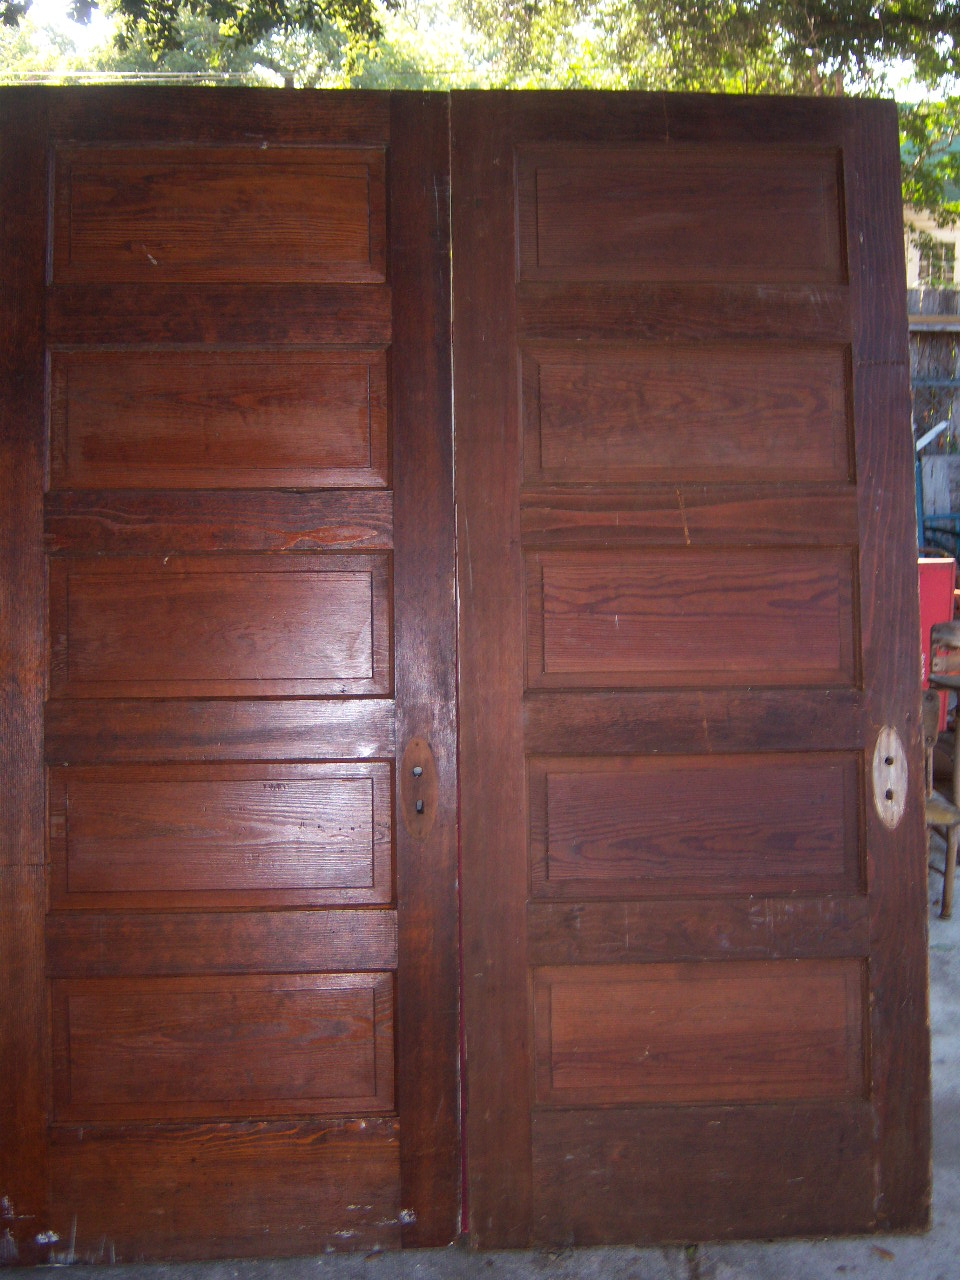 5 Raised wood Panel antique doors in good condition ... - Old Is Better Than New - Antique Architectural Old Wood & Glass